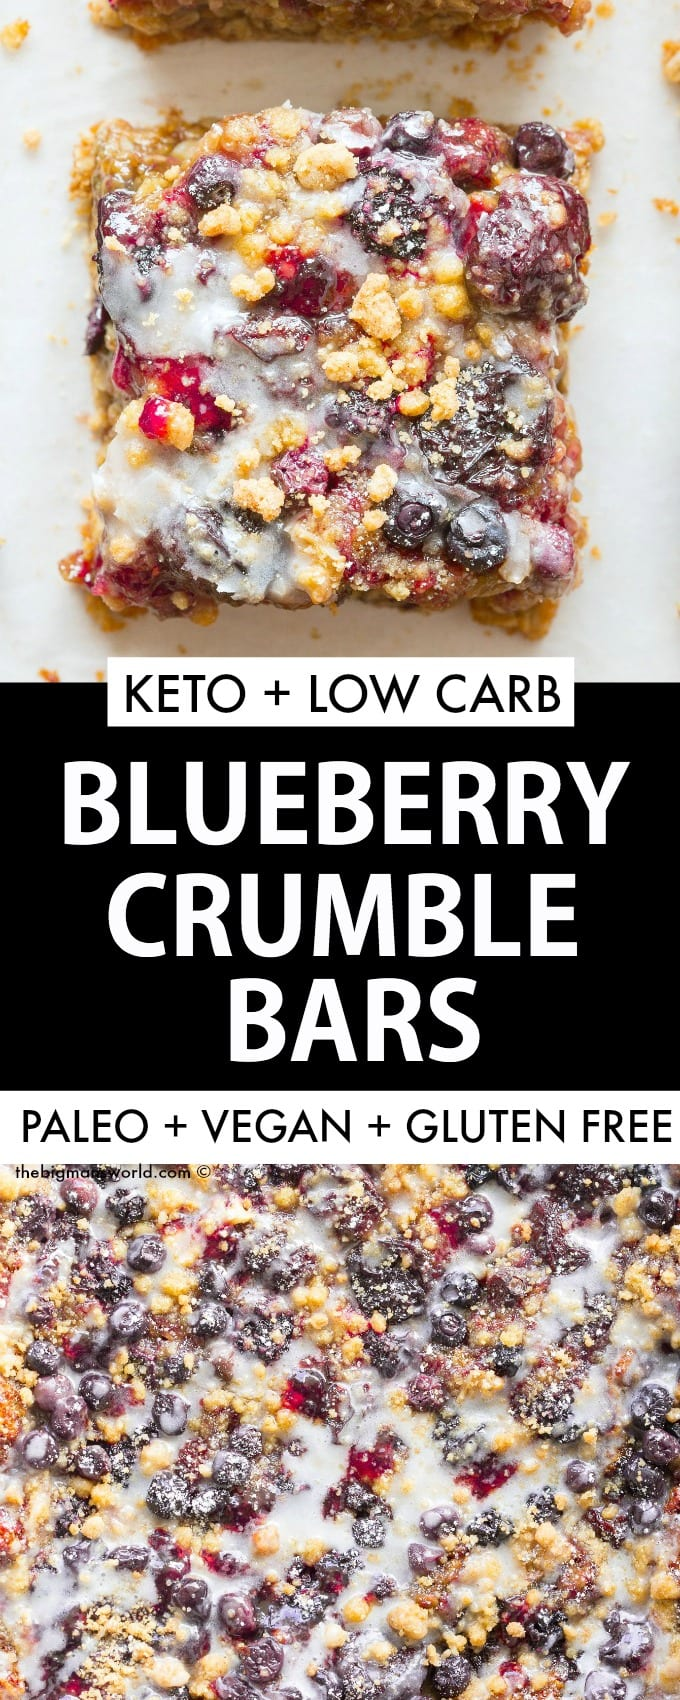 Easy homemade blueberry crumble bars recipe made without sugar and without oatmeal! Paleo, Vegan, gluten free and keto!